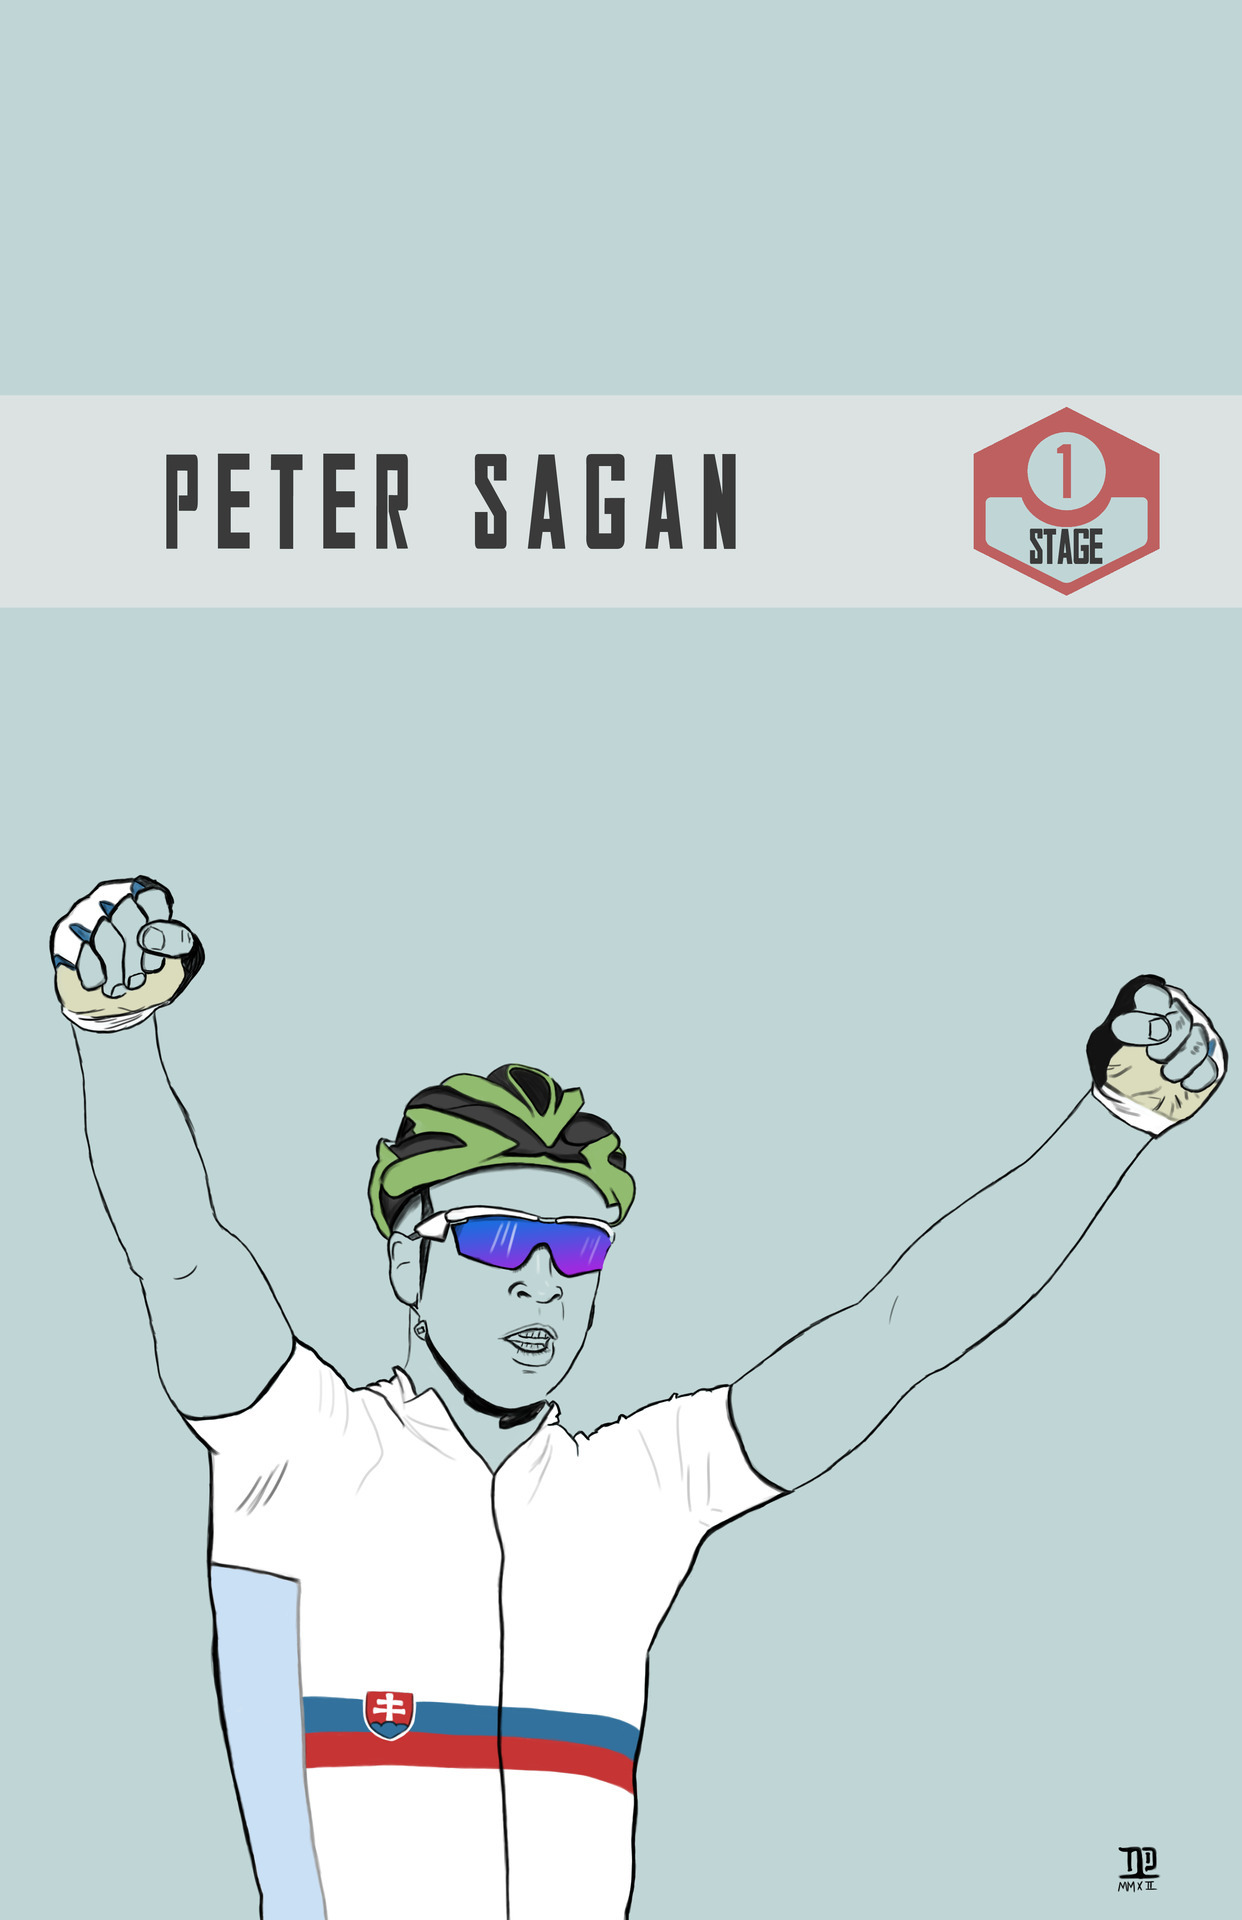 lastpolkadesign:  Tour de France: Stage 1 winner, Peter Sagan  ©nathandallesasse   Amazing illustrations from each stage winner by ©nathandallesasse #tdf